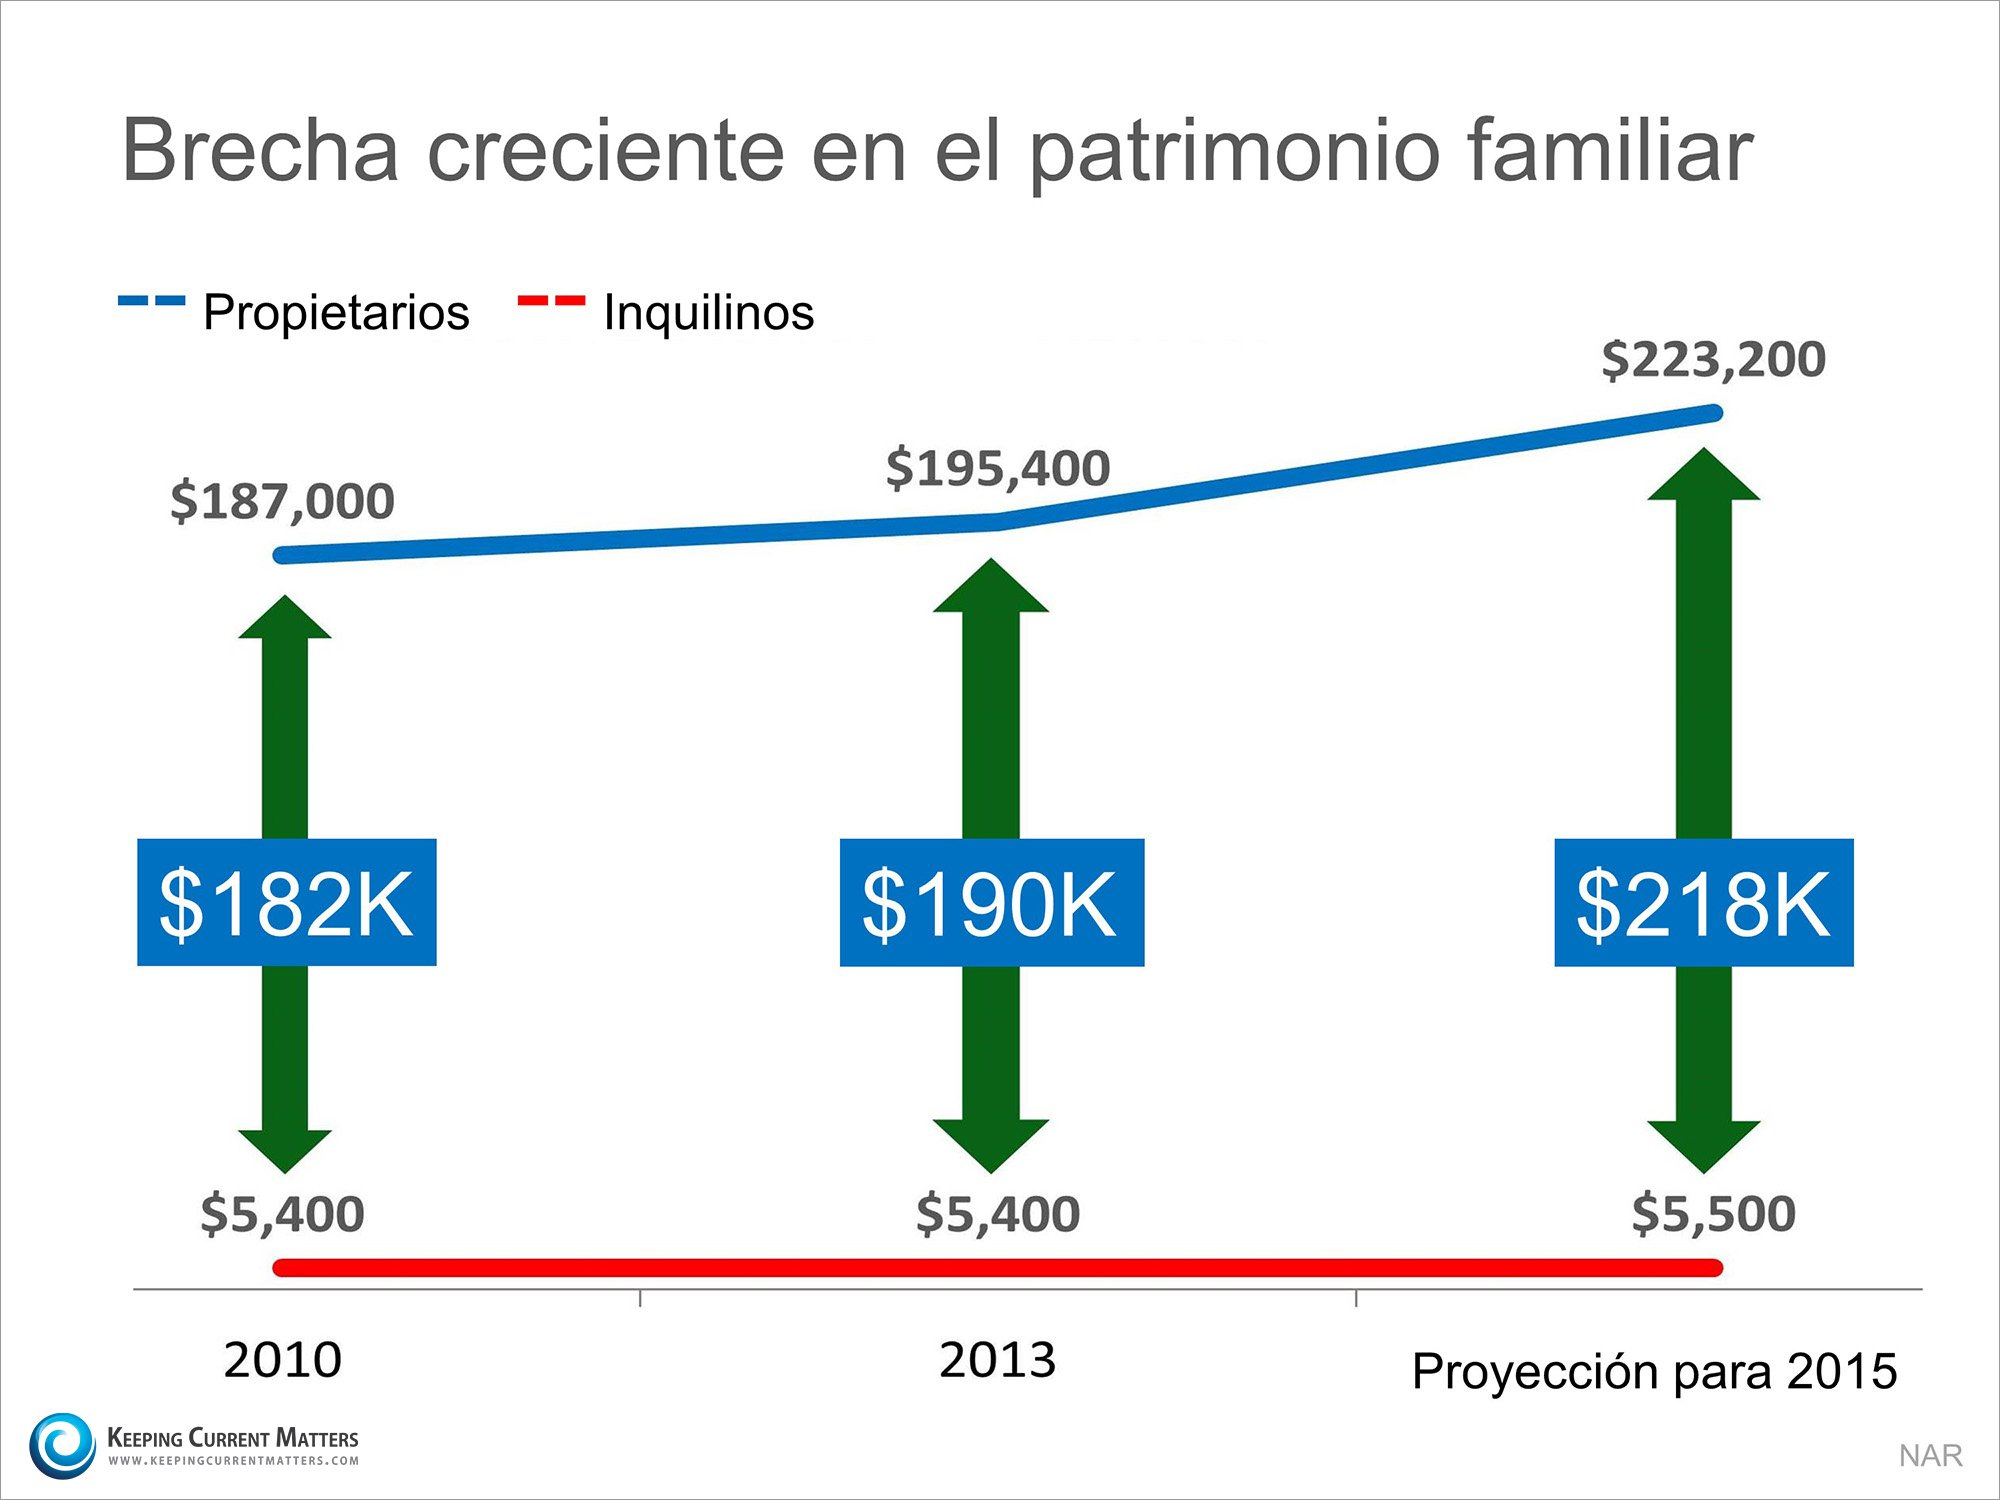 Brecha creciente en el patrimonio familiar | Keeping Current Matters